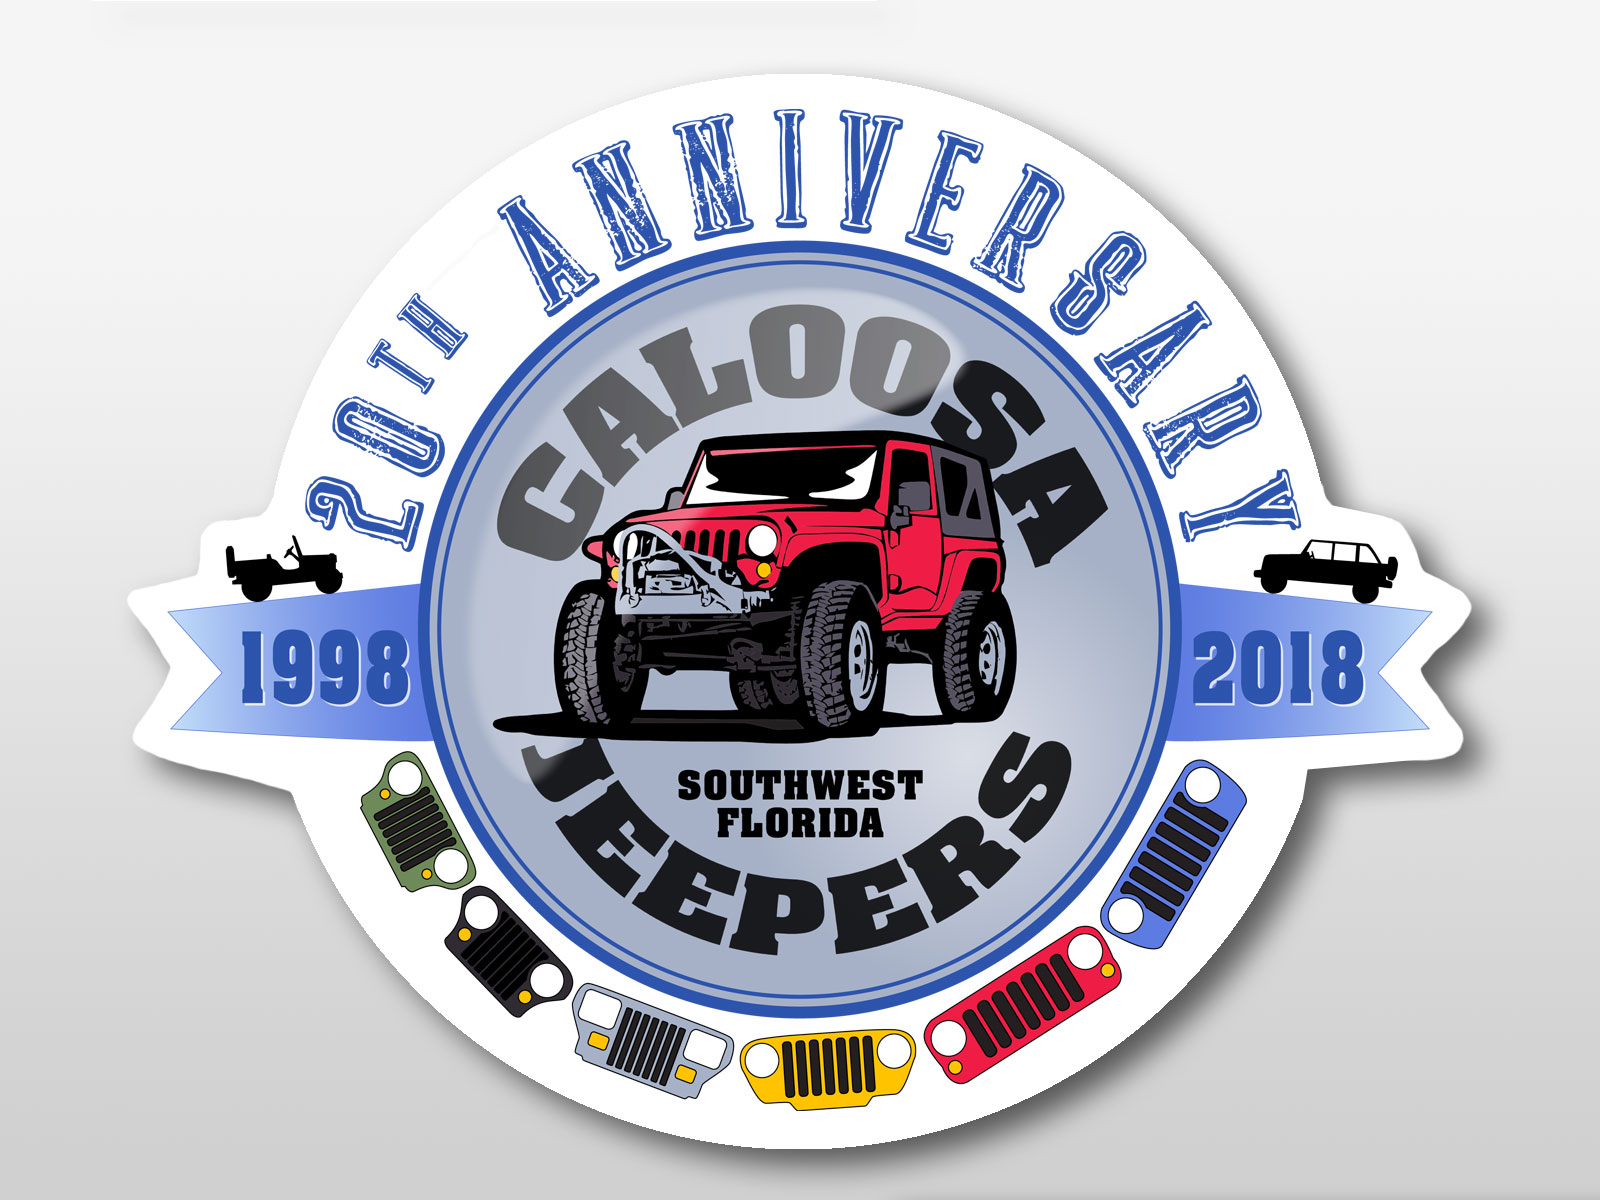 Caloosa Jeepers 20th Anniversary Sticker